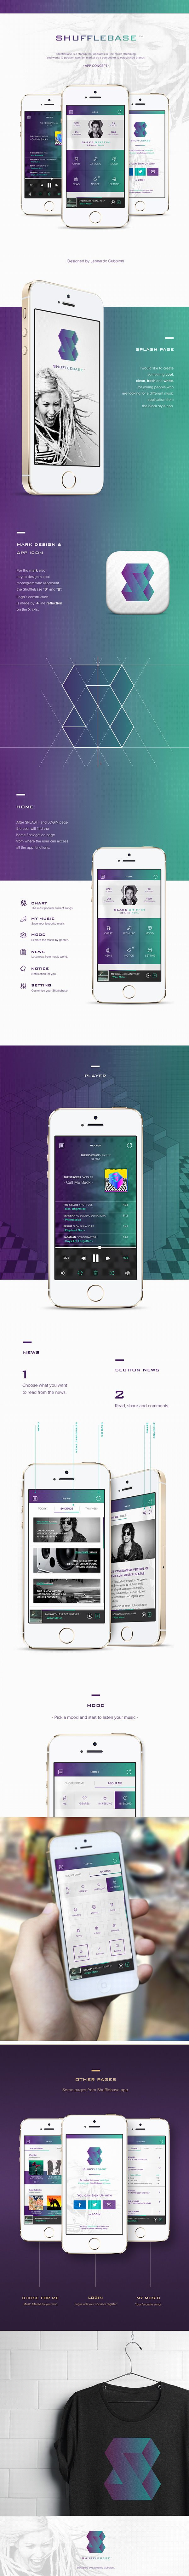 Shufflebase | Music App Concept on App Design Served